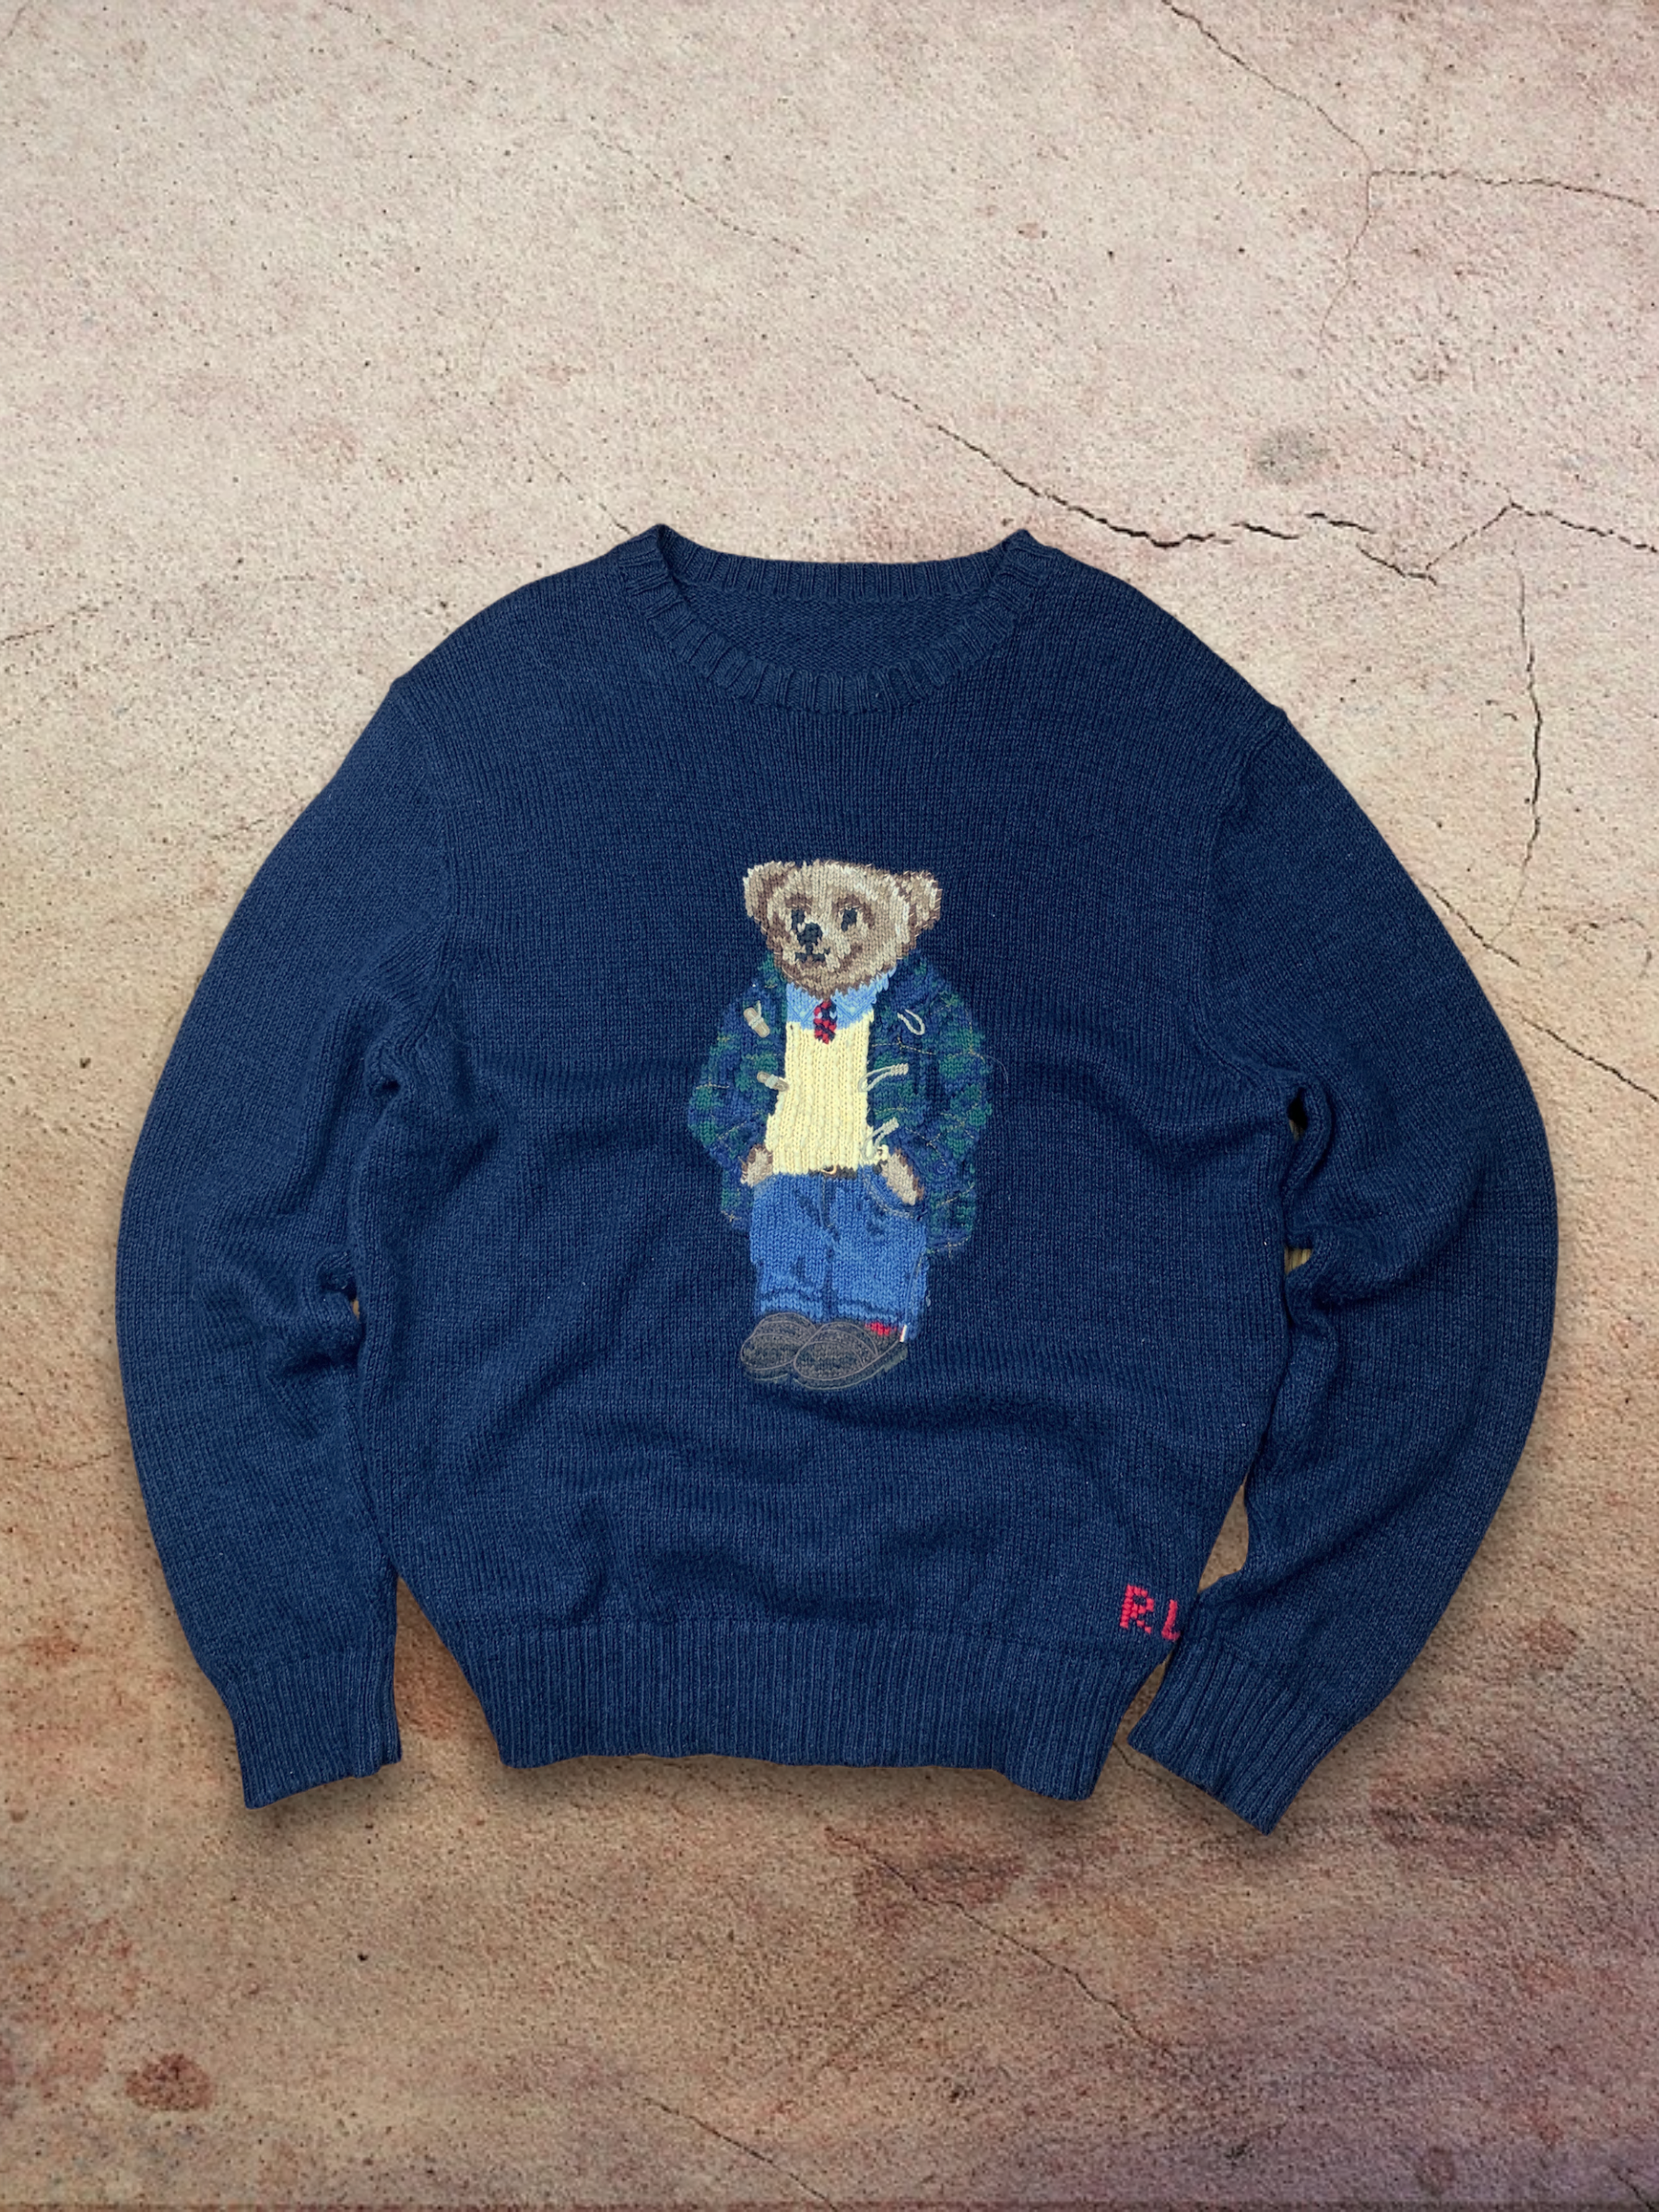 Vintage Polo Bear Knit Sweater *Free shipping